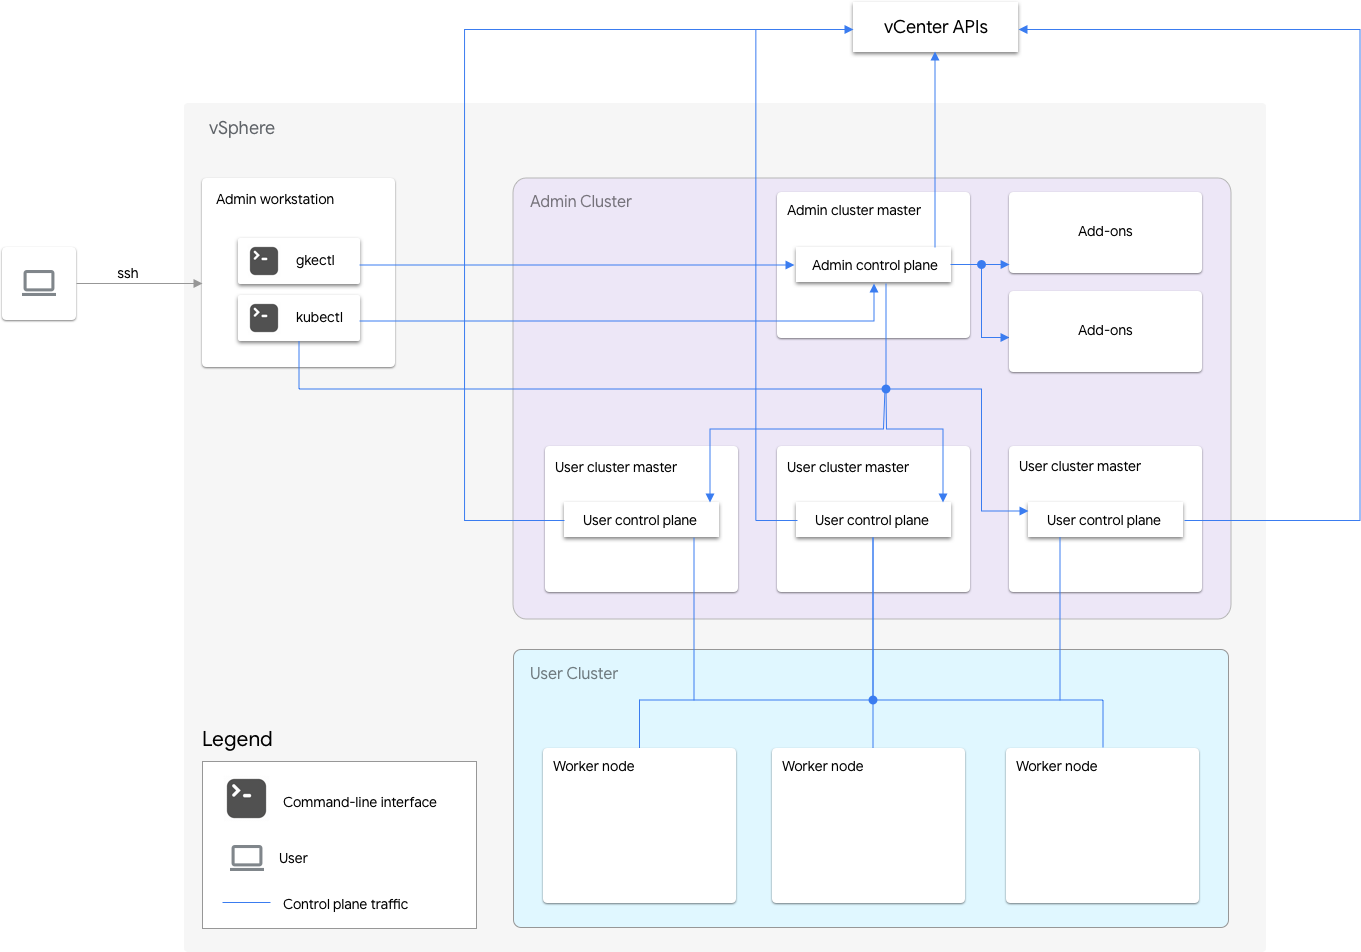 Anthos clusters on VMware architecture with highly-available user clusters